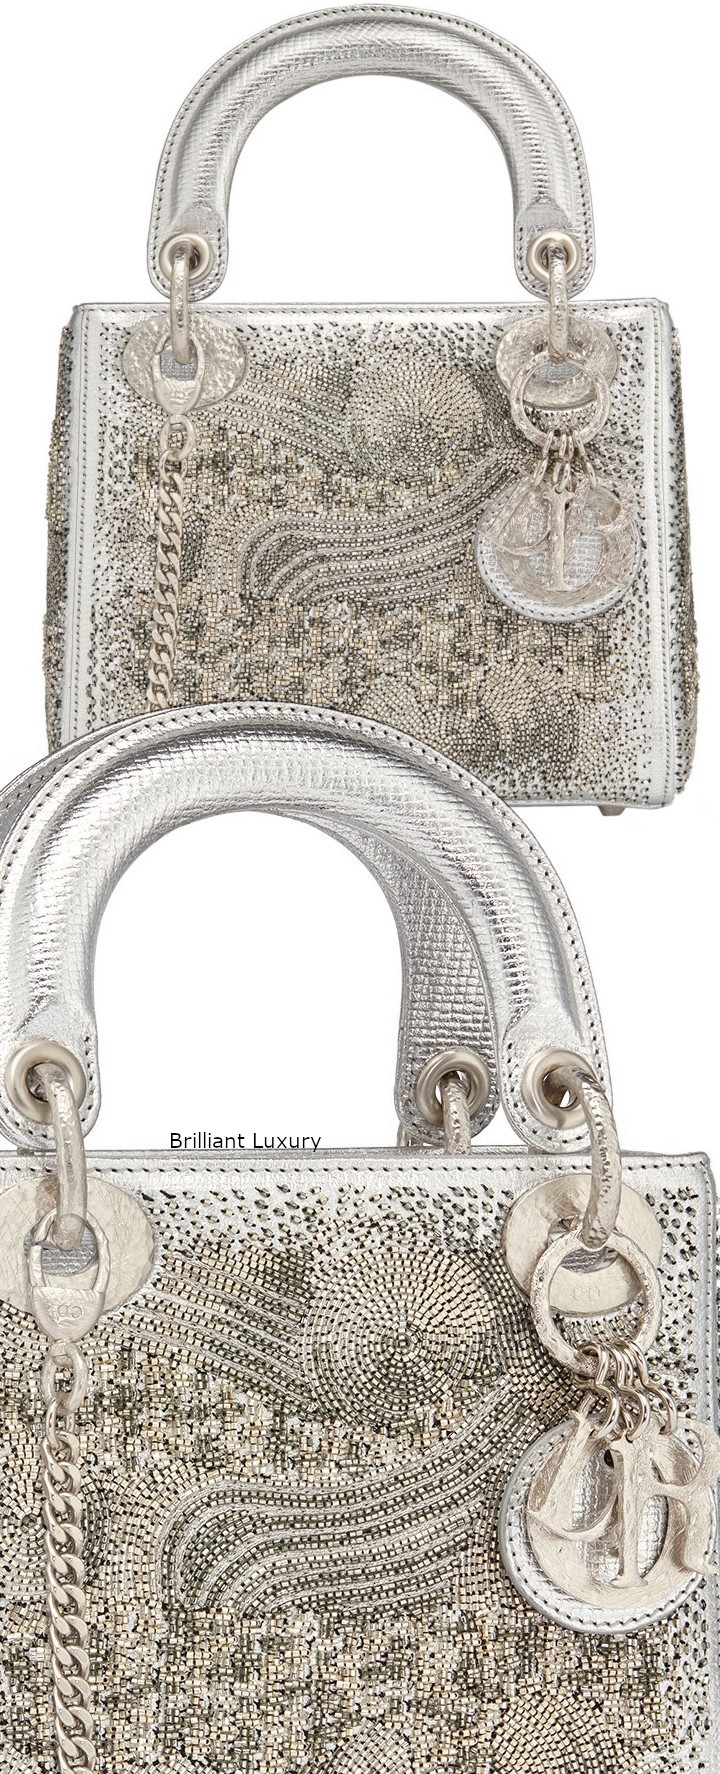 Dior Bag in silver color textured goatskin embroidered with metallized tubes-hand-hammered silver tone metal charms Designer Olga de Amaral